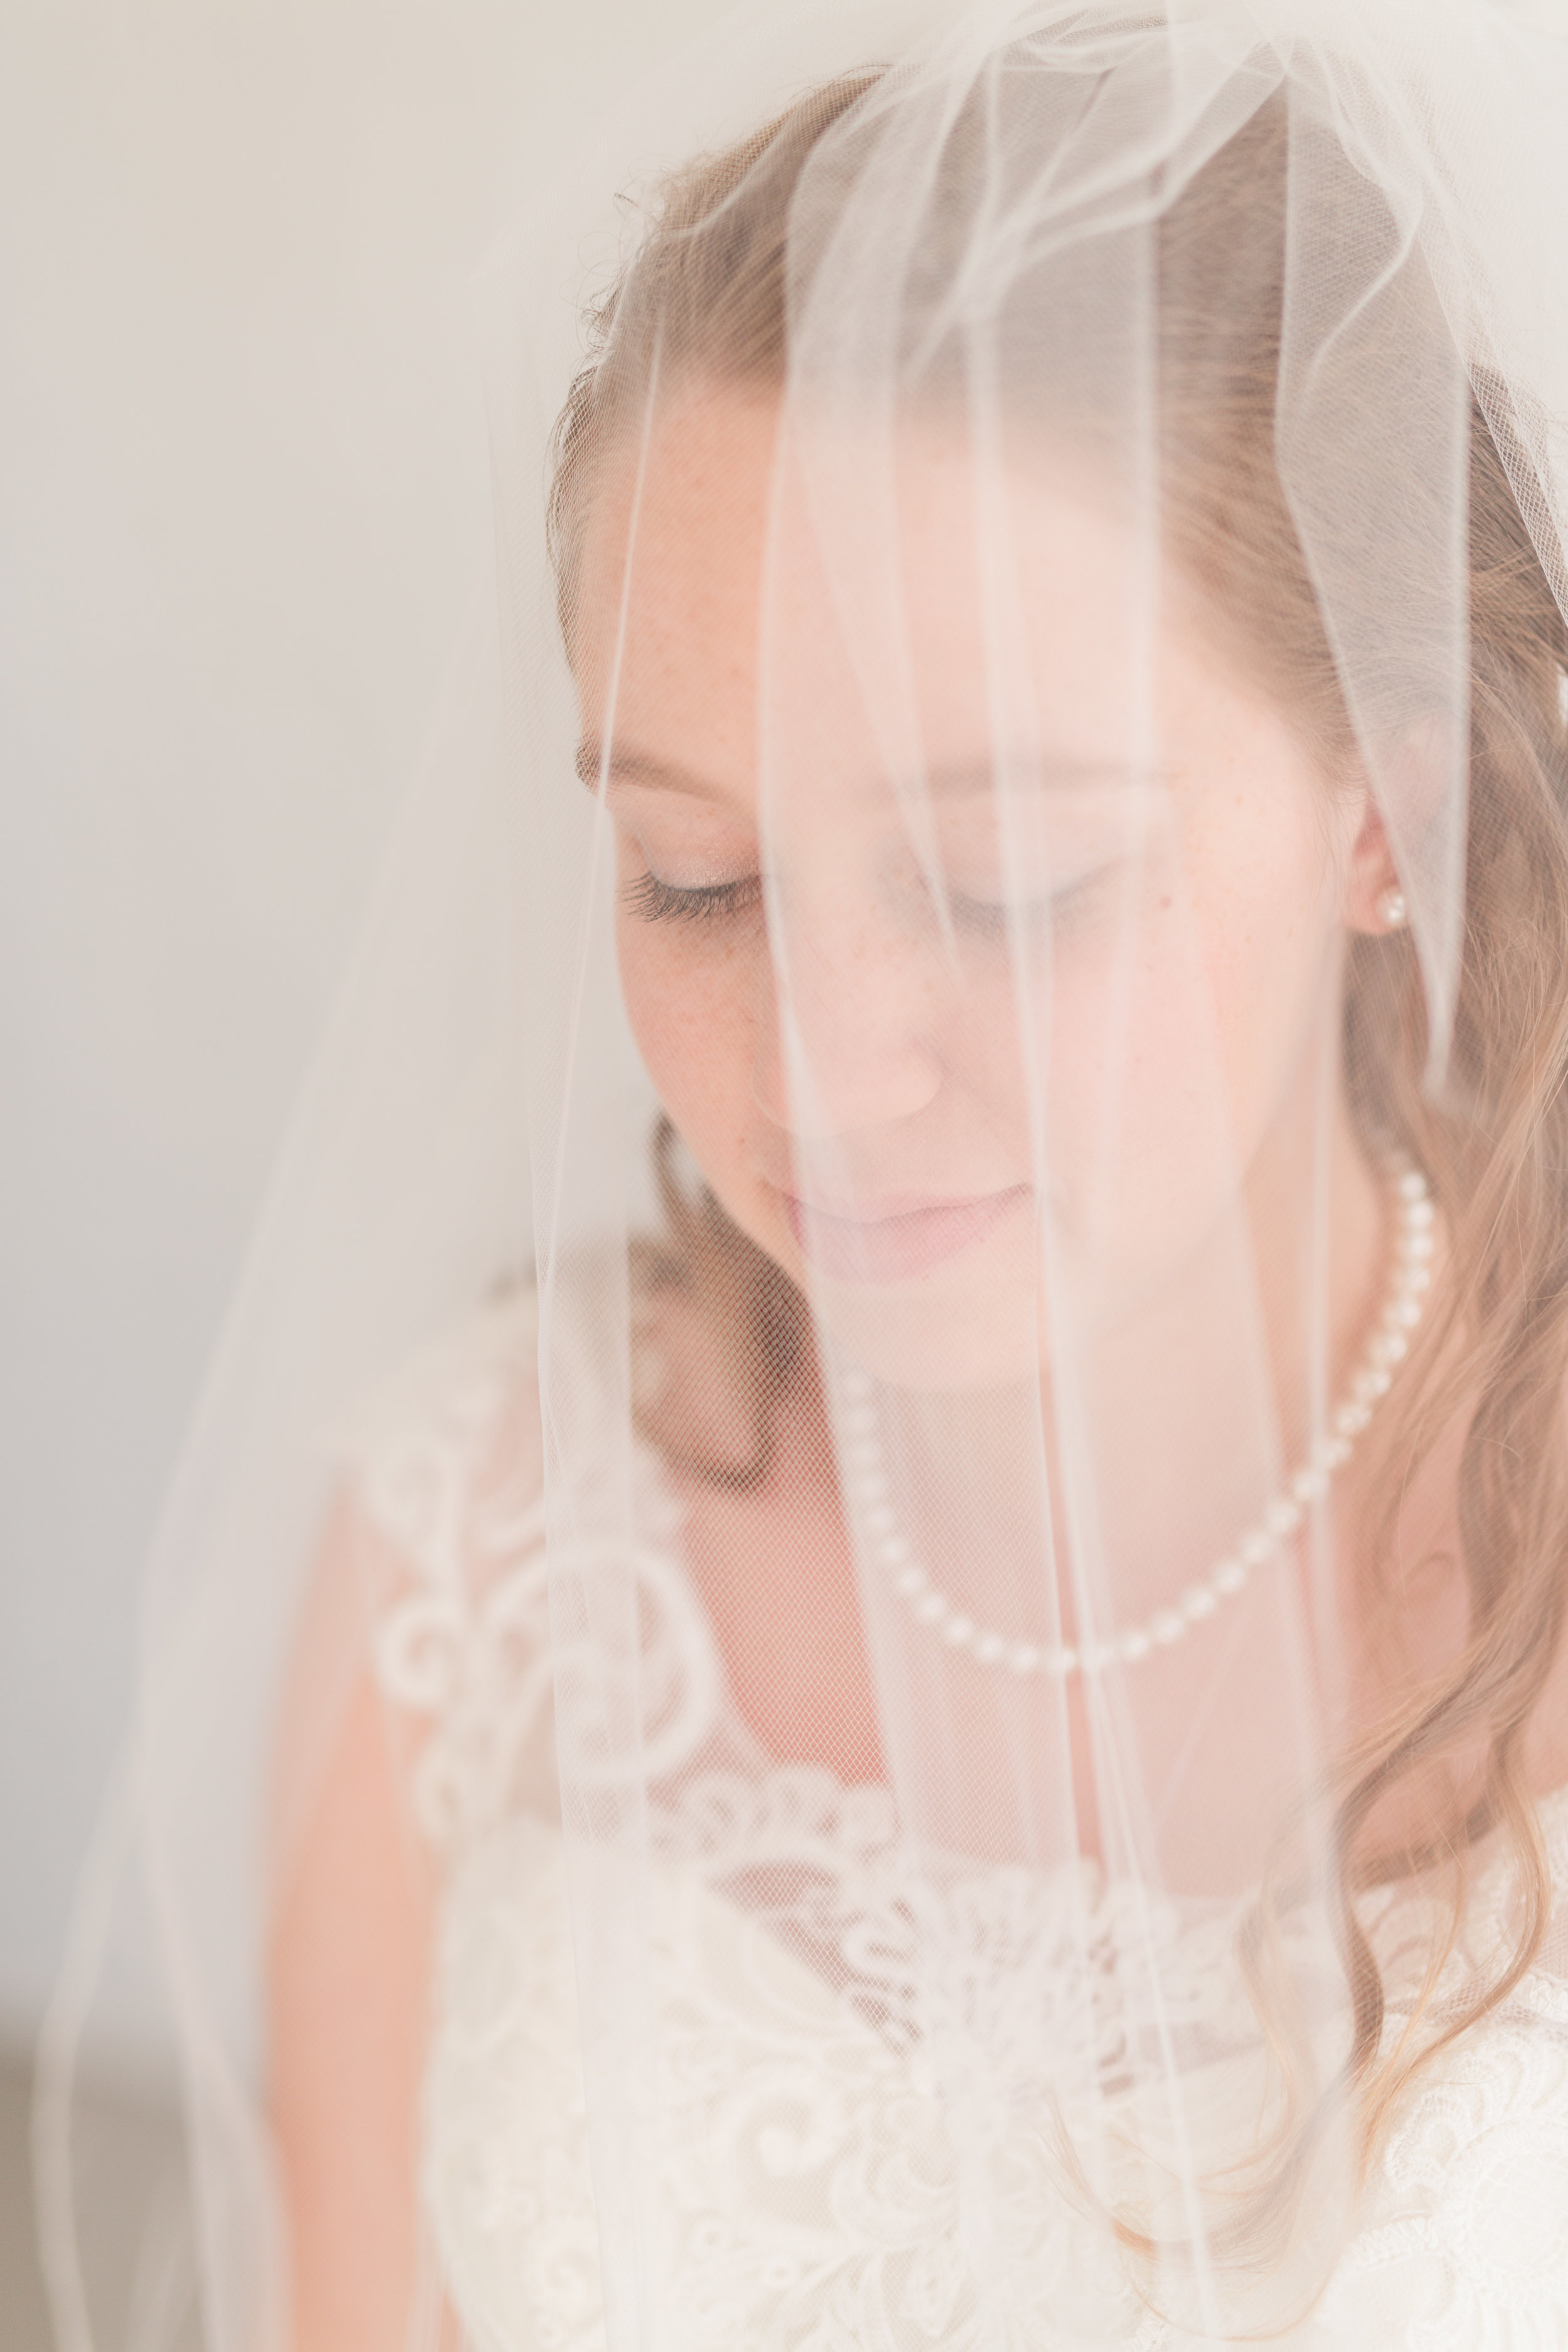 Lynchburg Virginia Wedding Photographer || The Trivium Estate Wedding || www.ashleyeiban.com